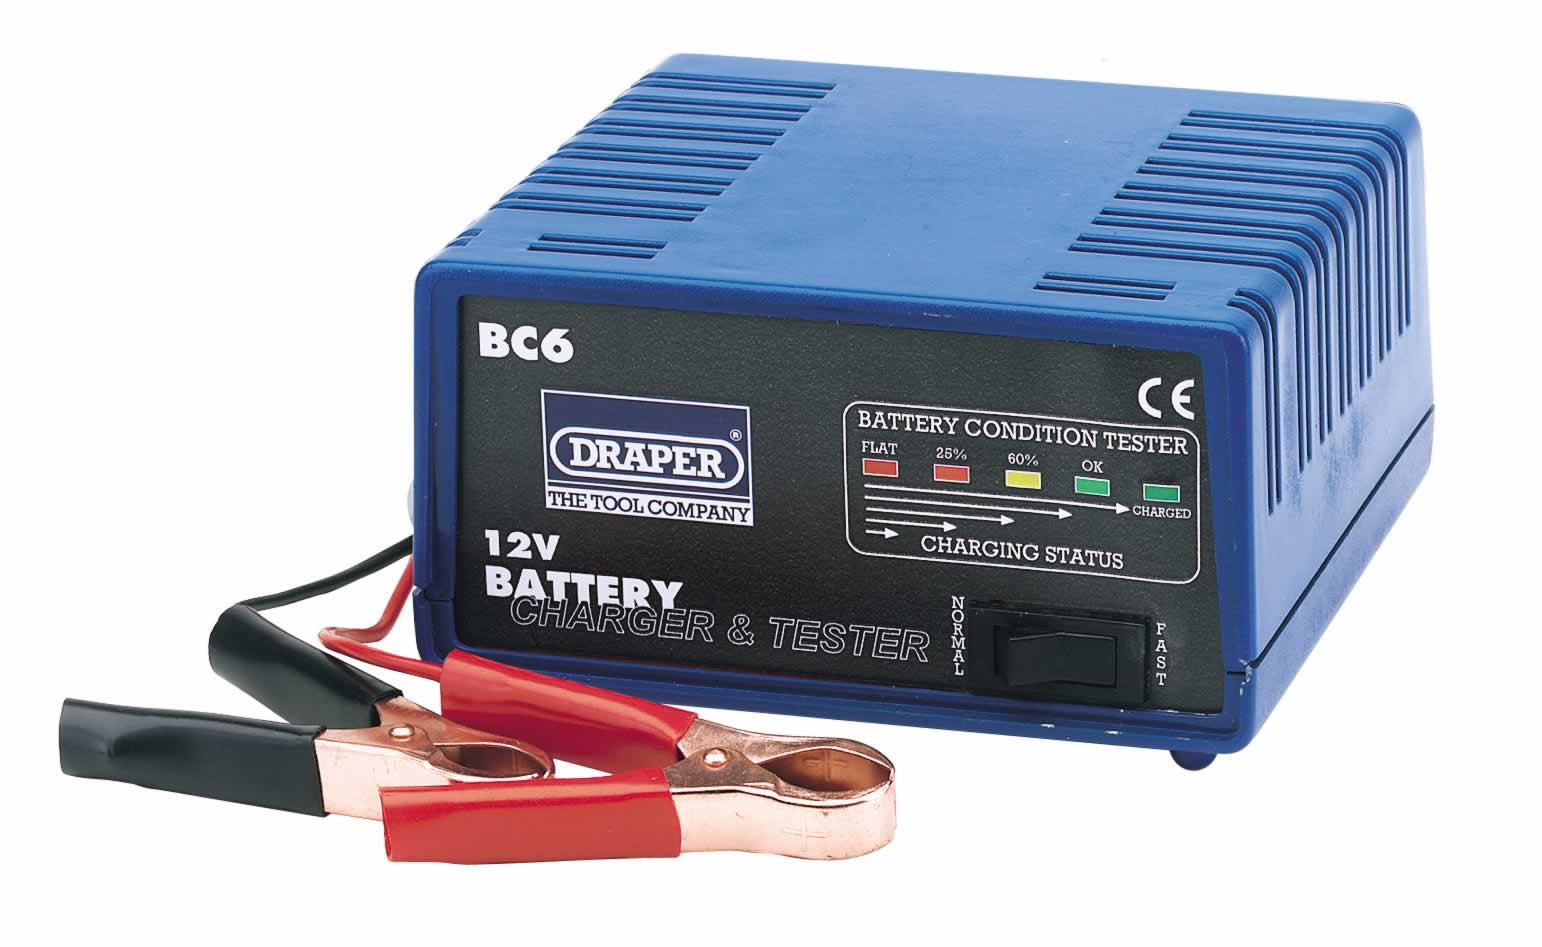 12V BATTERY CHARGER  TESTER - 6A